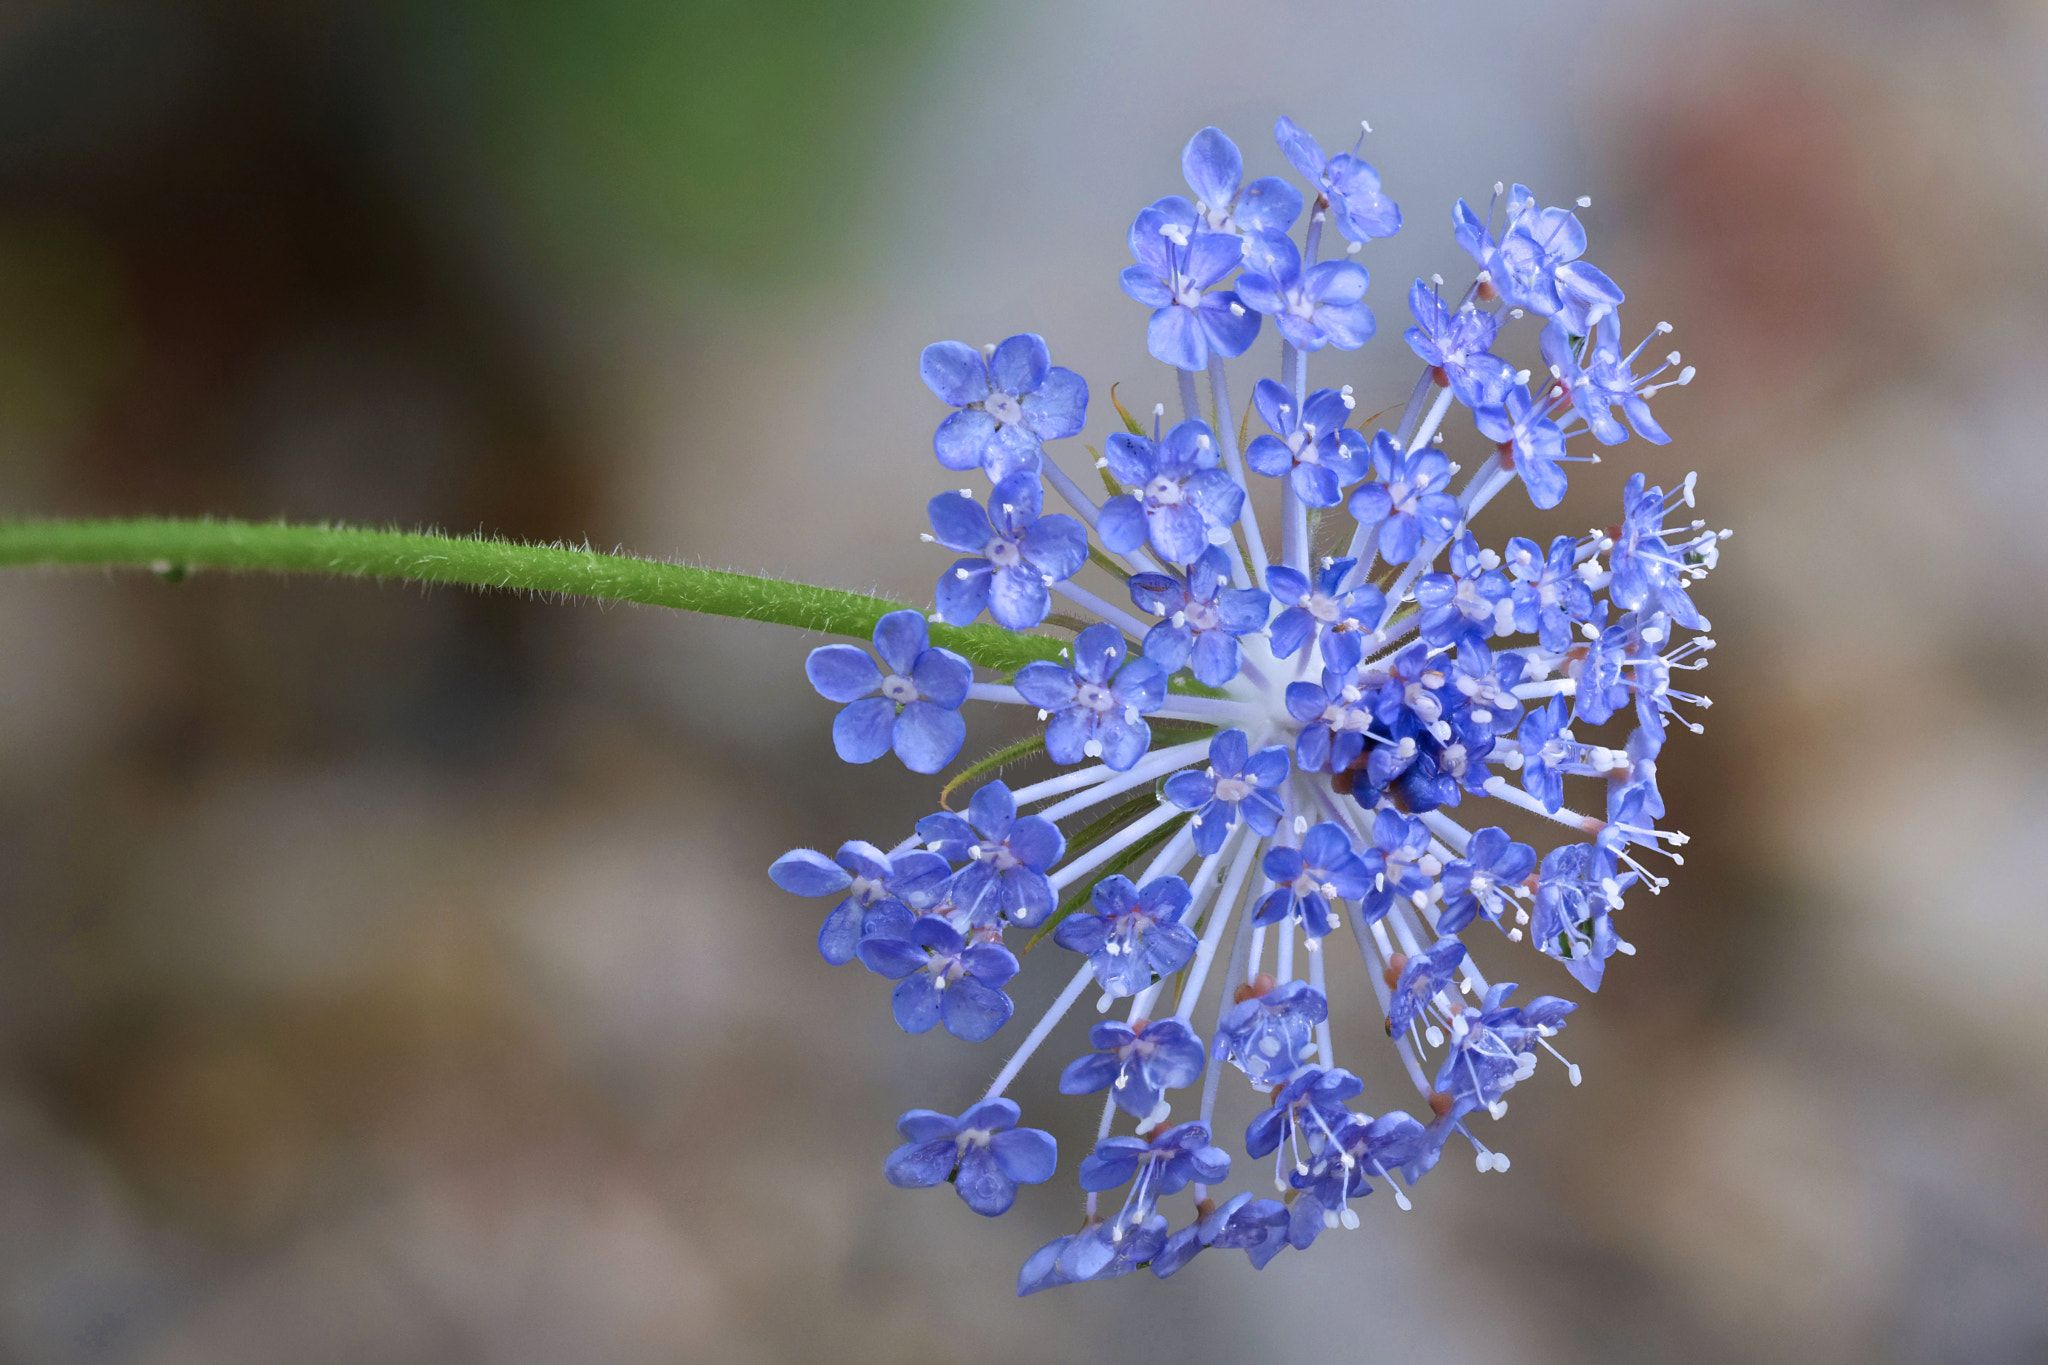 Didiscus Caerulea Didiscus Caerulea Or Trachymene Coerulea Is Commonly Known As The Blue Lace Flower It Is Native To Austral Caerulea Lace Flowers Flowers